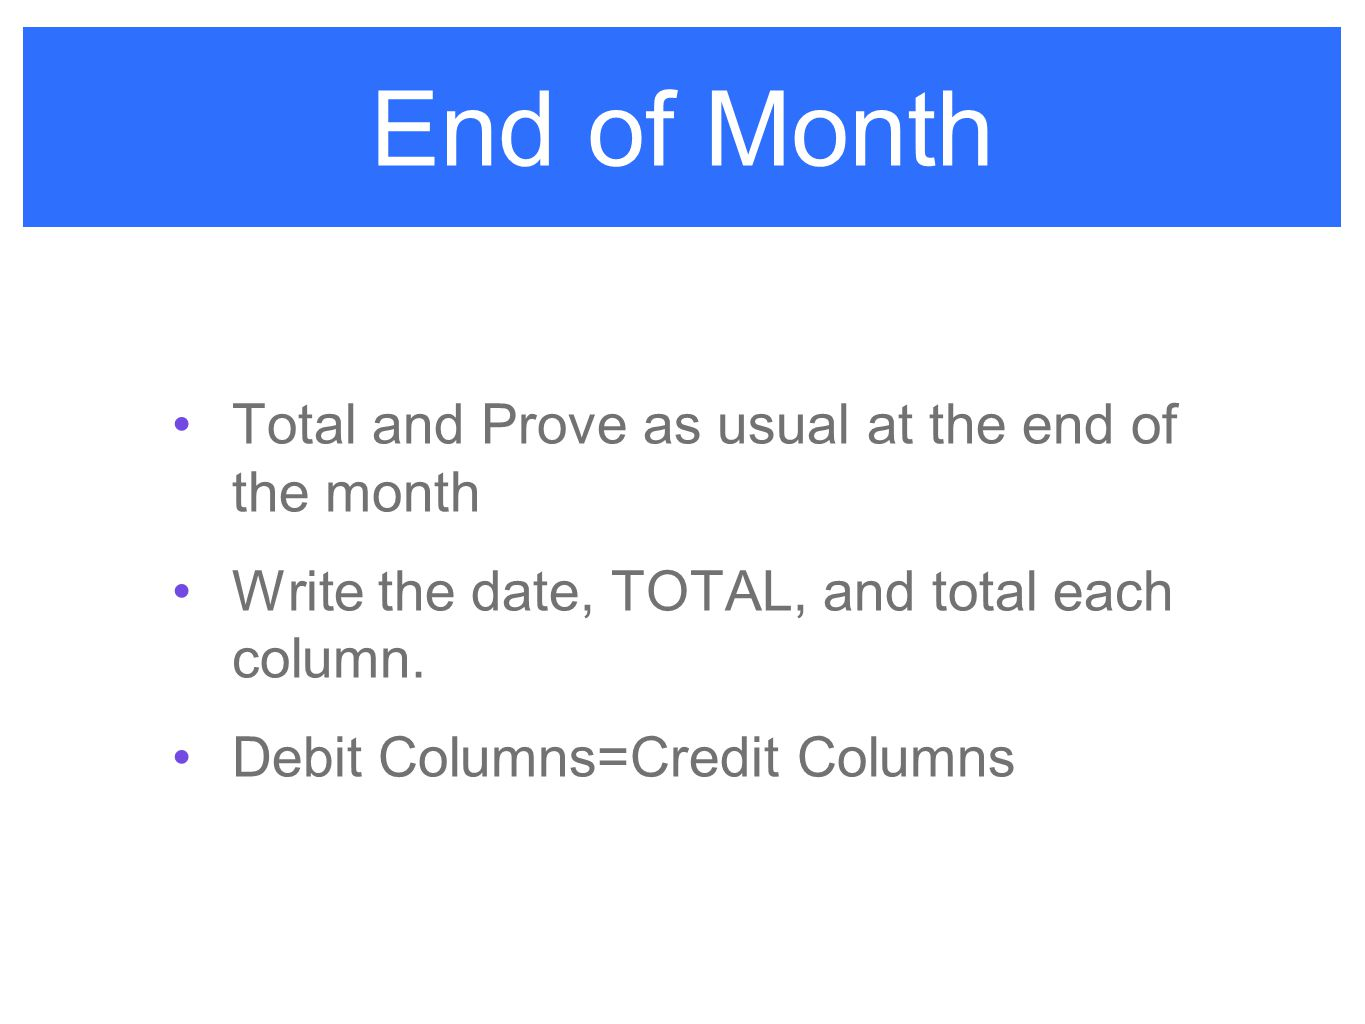 End of Month Total and Prove as usual at the end of the month Write the date, TOTAL, and total each column. Debit Columns=Credit Columns